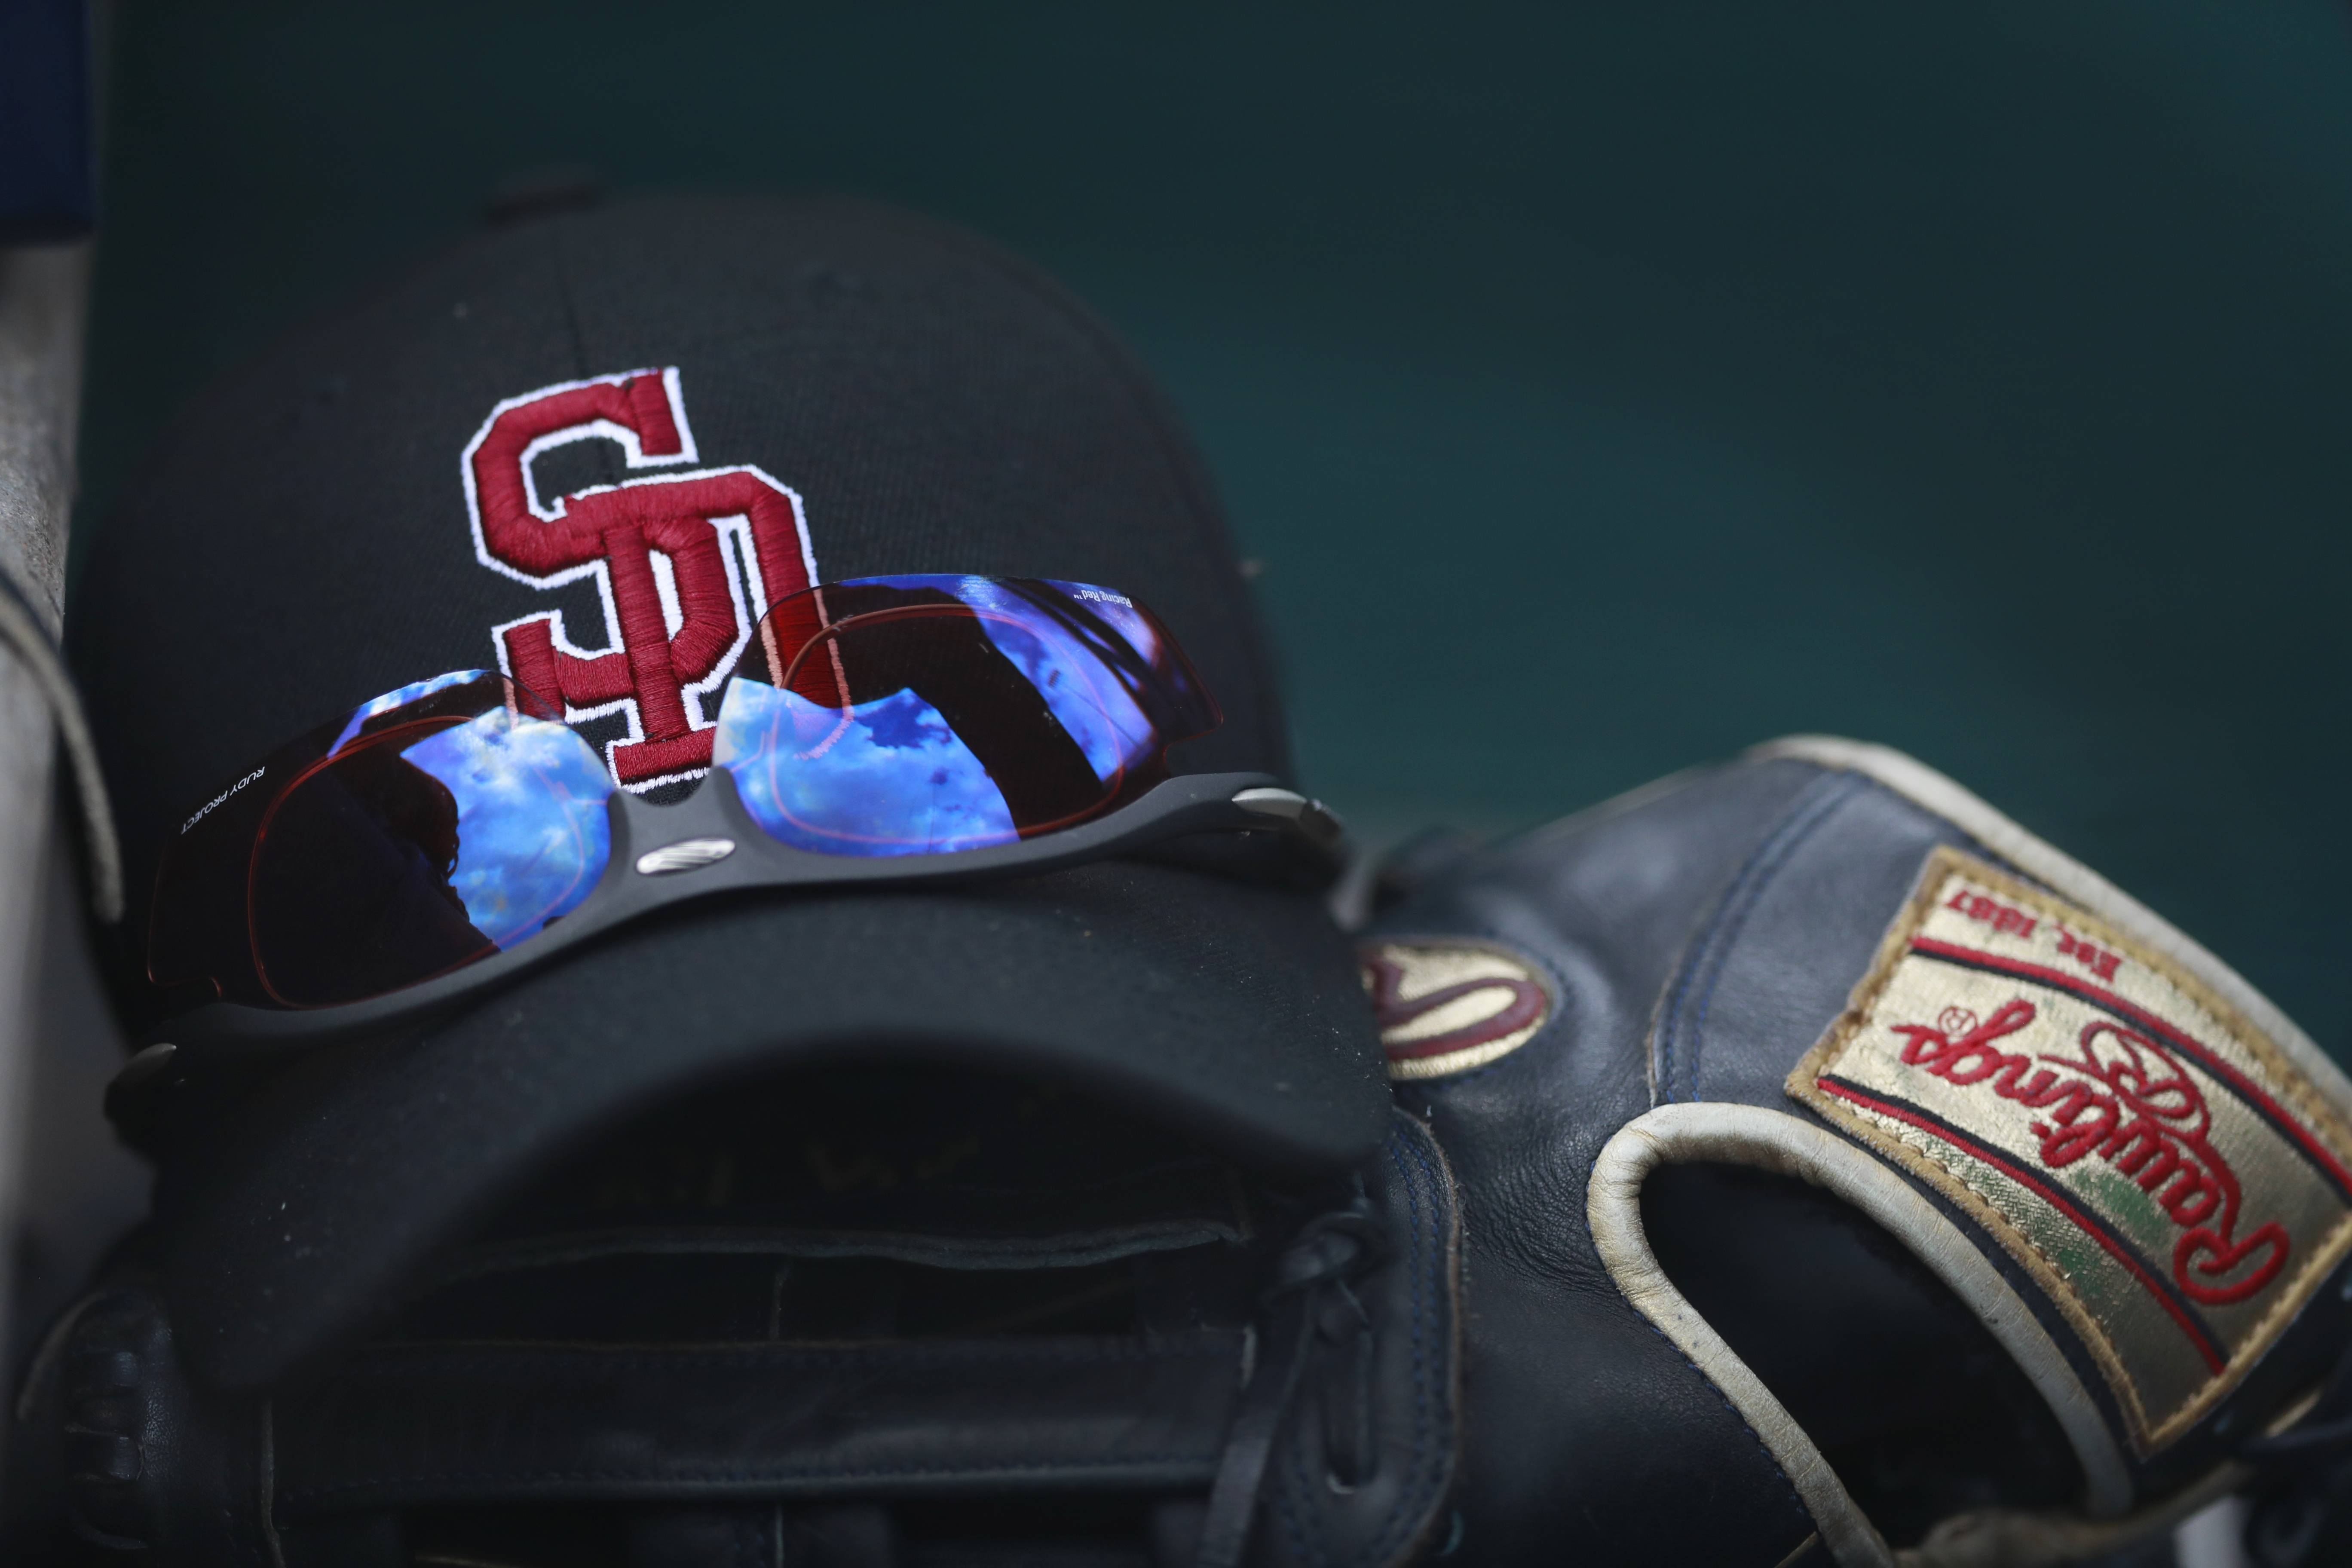 Anthony Rizzo and the Chicago Cubs said they were proud Friday to wear the baseball caps of Rizzo's alma mater, Stoneman Douglas High School, scene of a mass shooting last week.